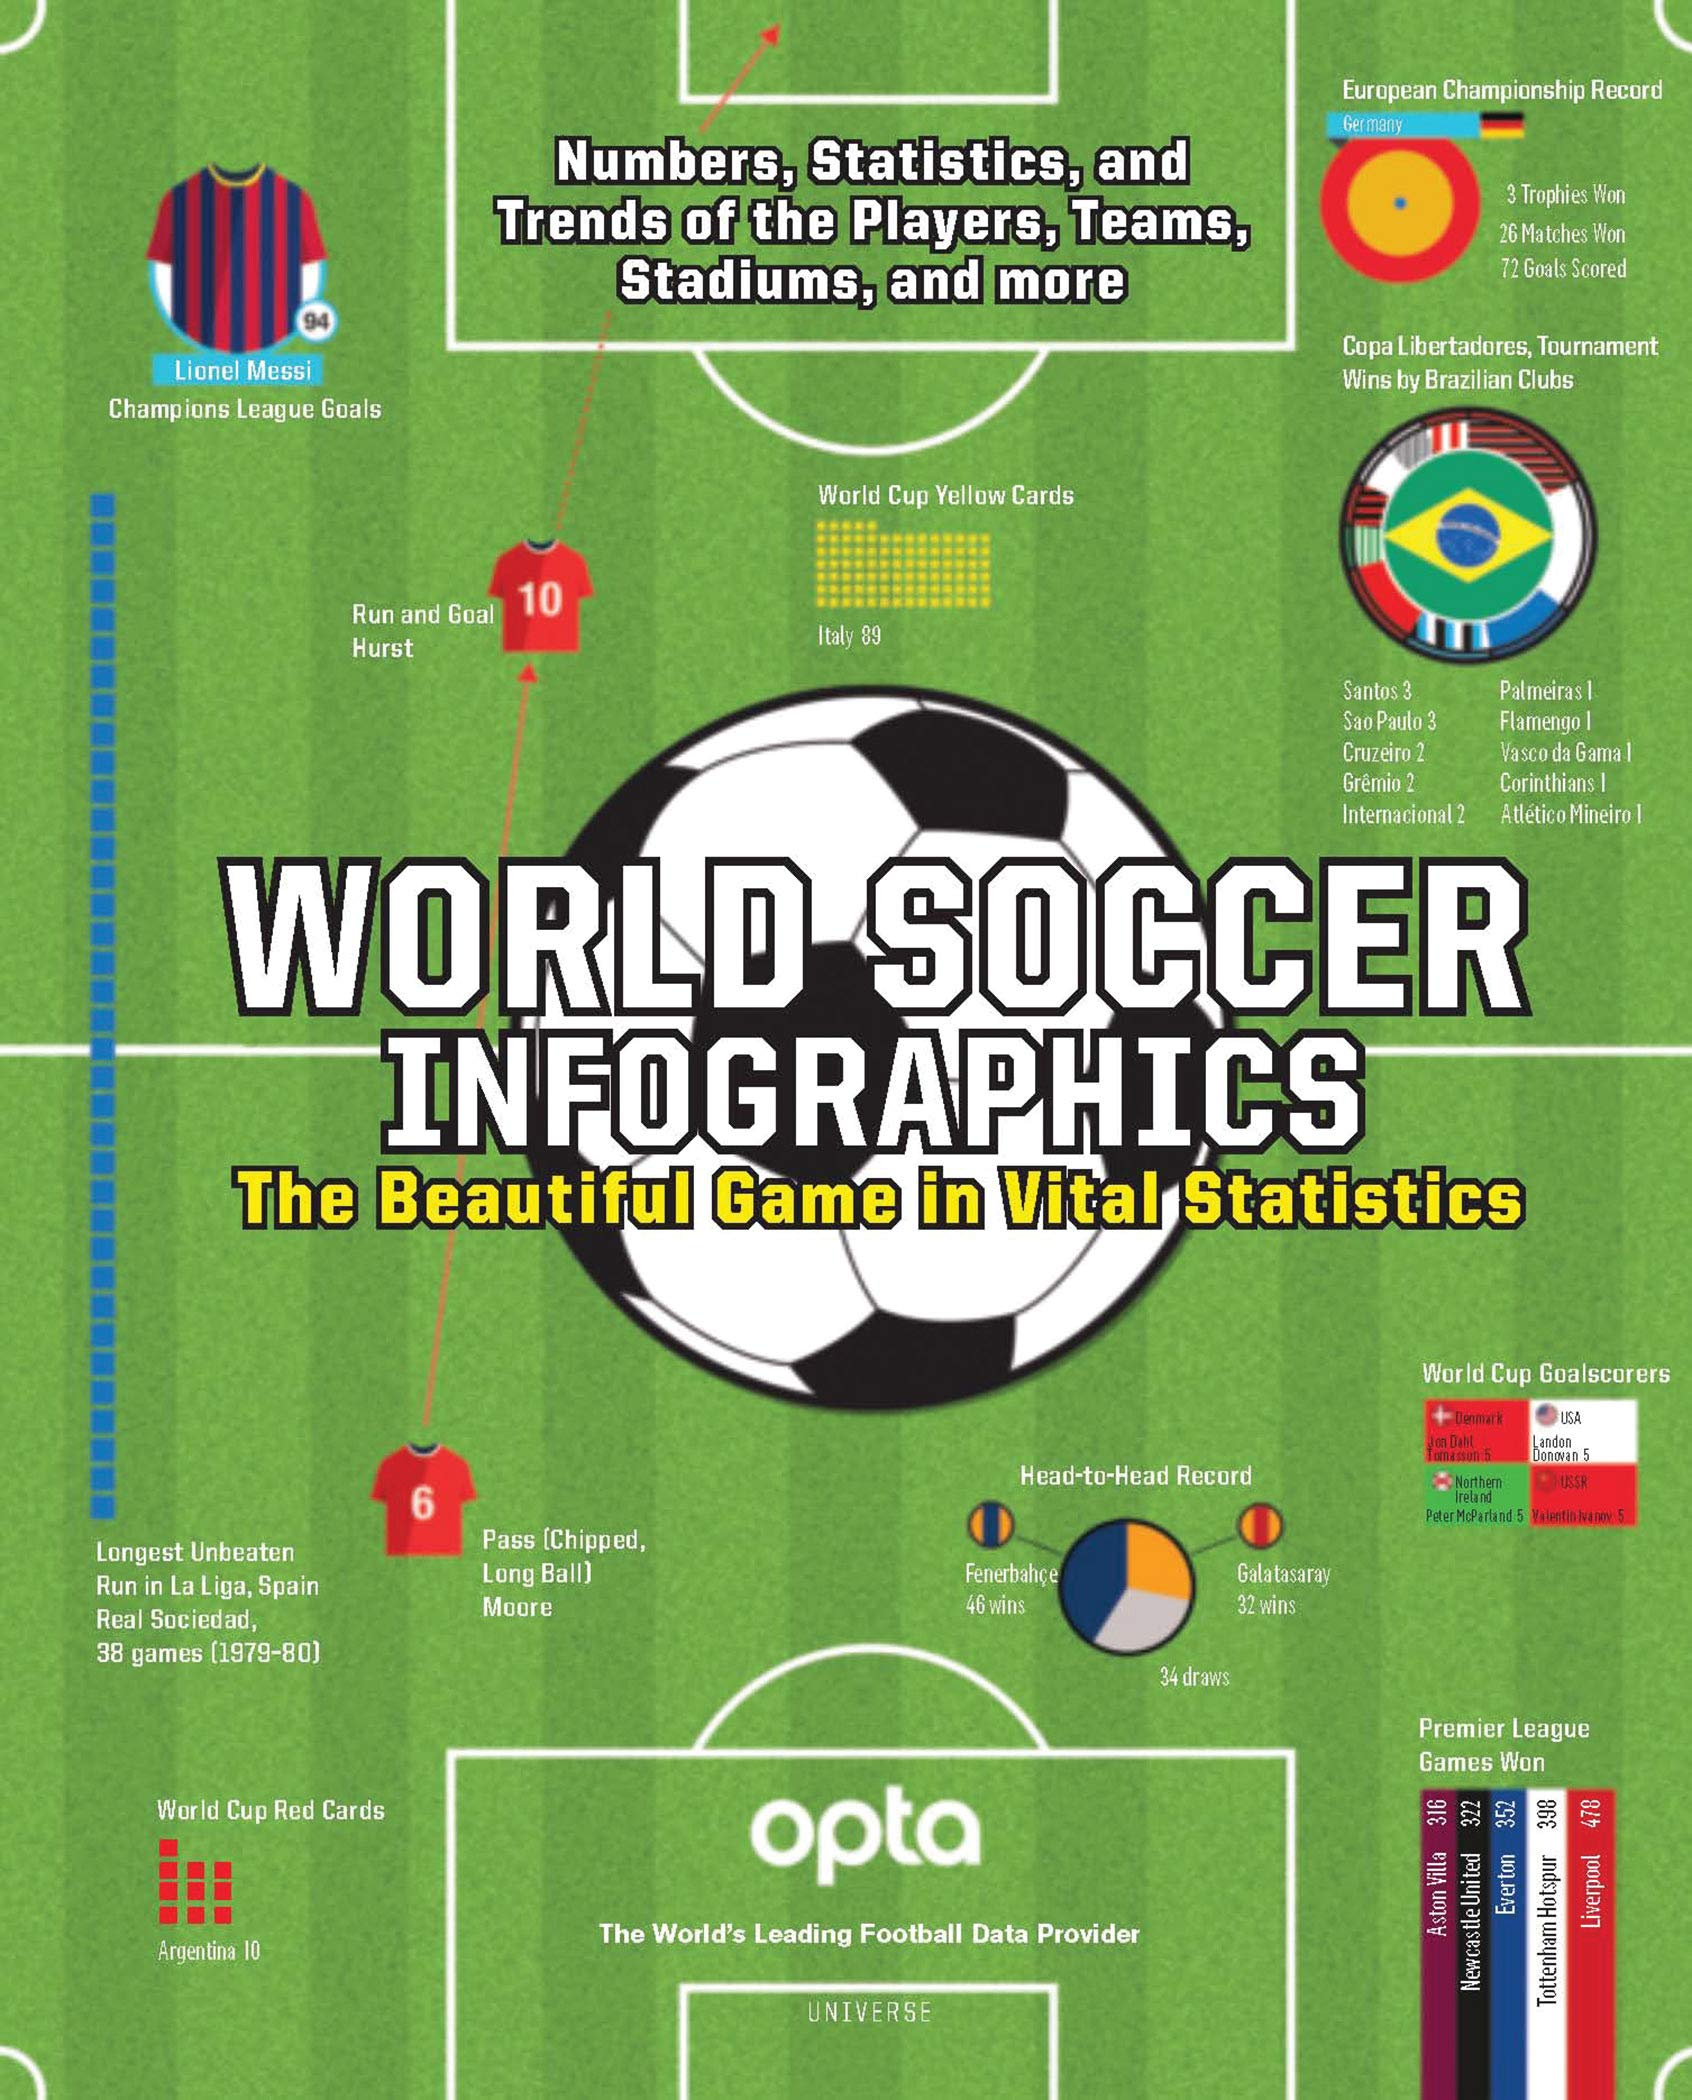 World Soccer Infographics: The Beautiful Game in Vital